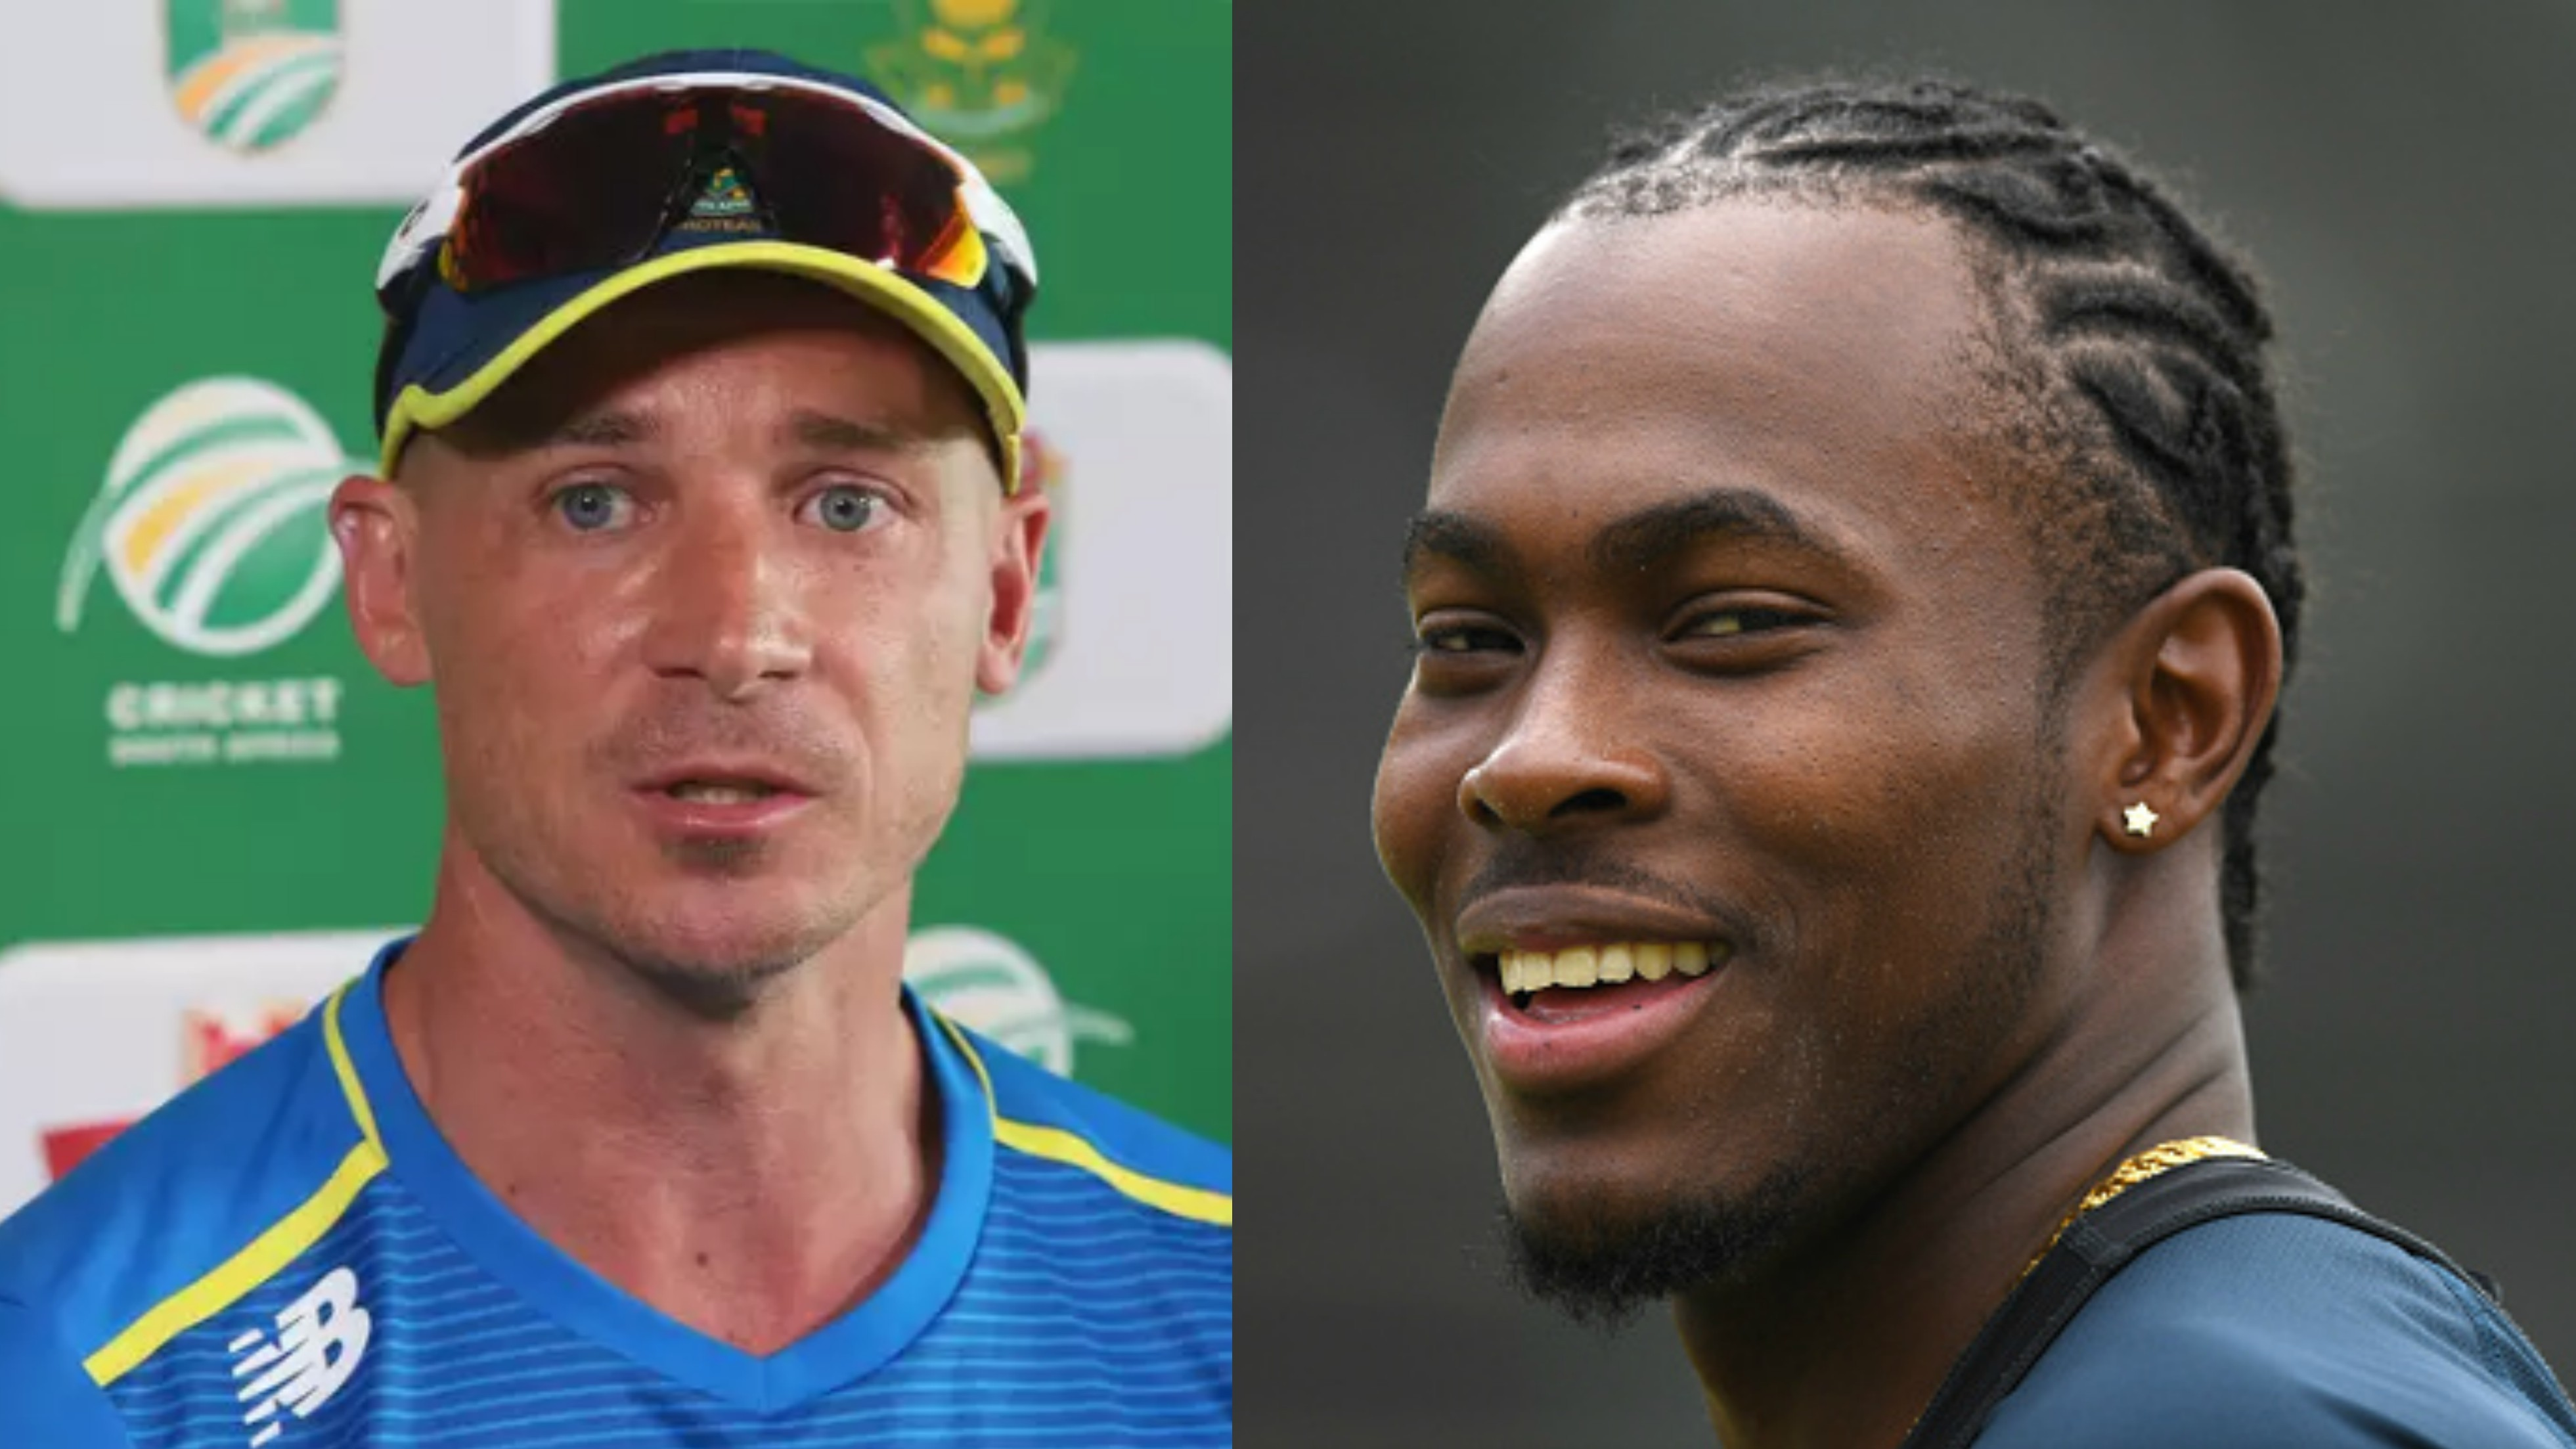 Dale Steyn reveals his reaction after first watching Jofra Archer bowling in county cricket